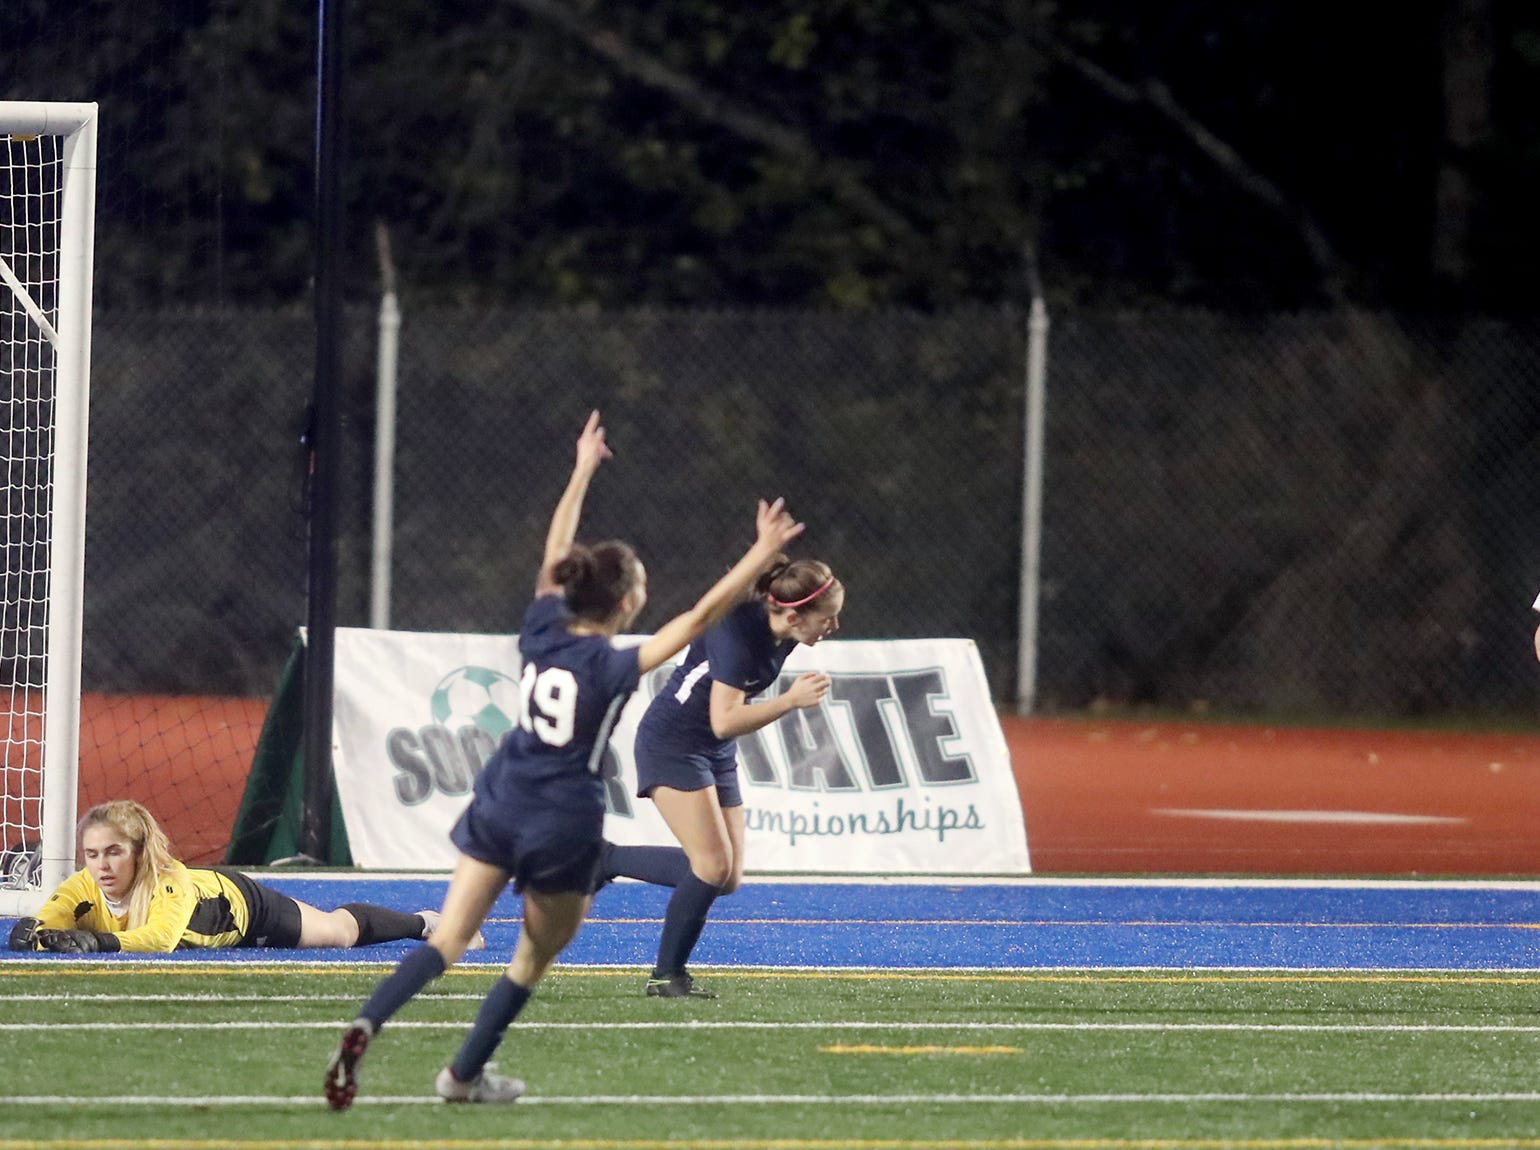 Klahowya lost to King's Way on shootout kicks  in the 2018 Girls Soccer State Championship 1A semifinal game at Shoreline Stadium on Friday, November 16, 2018.King's way celebrates the  first goal of the game